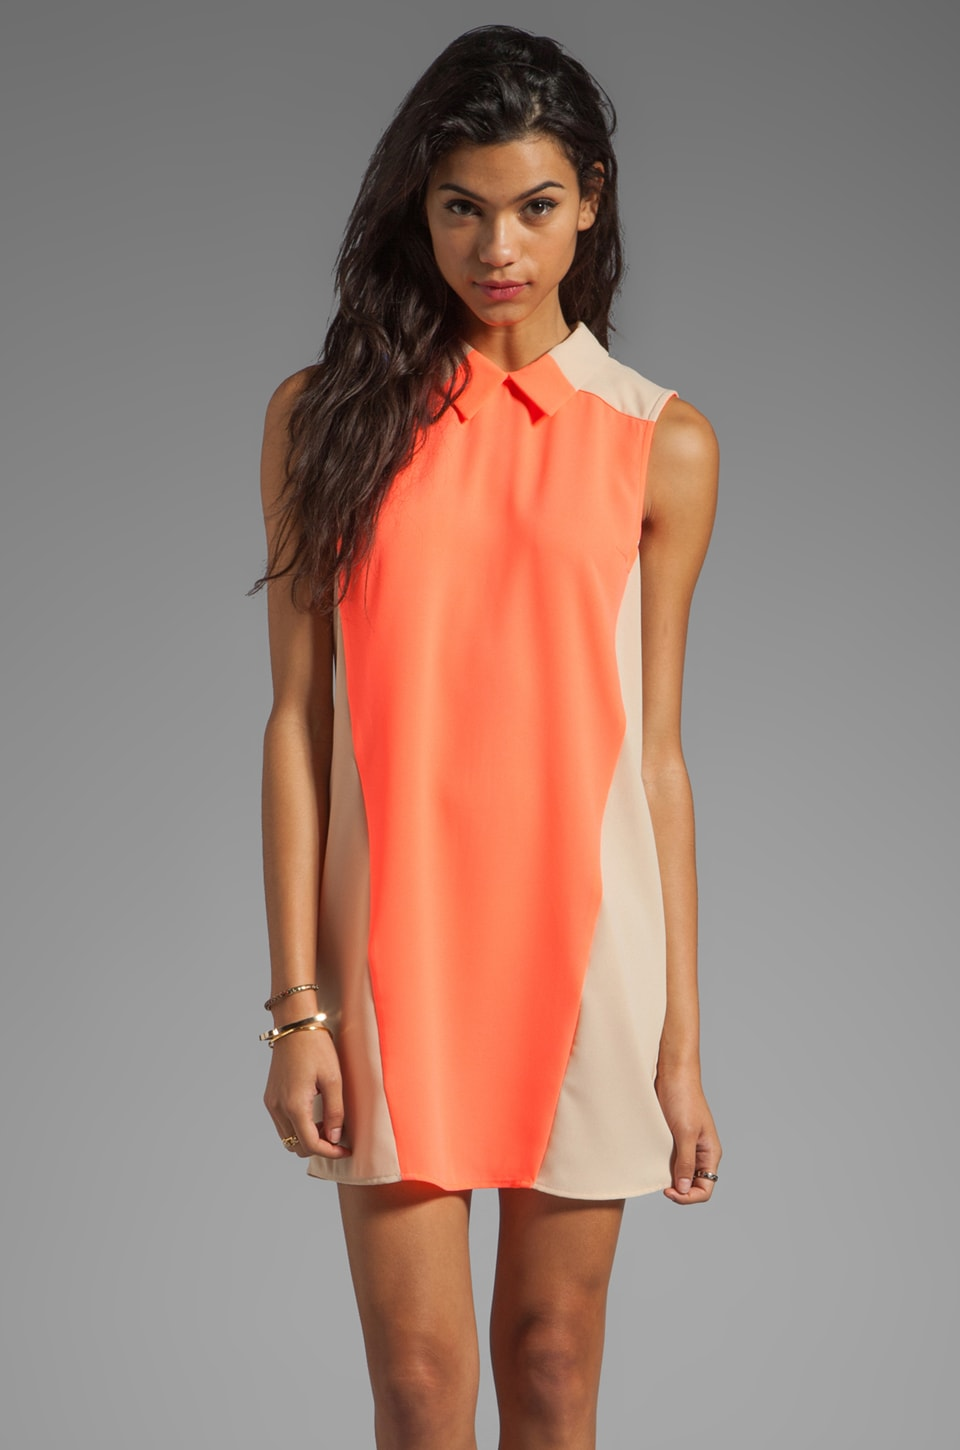 Finders Keepers December Dress in Sherbert/Nude